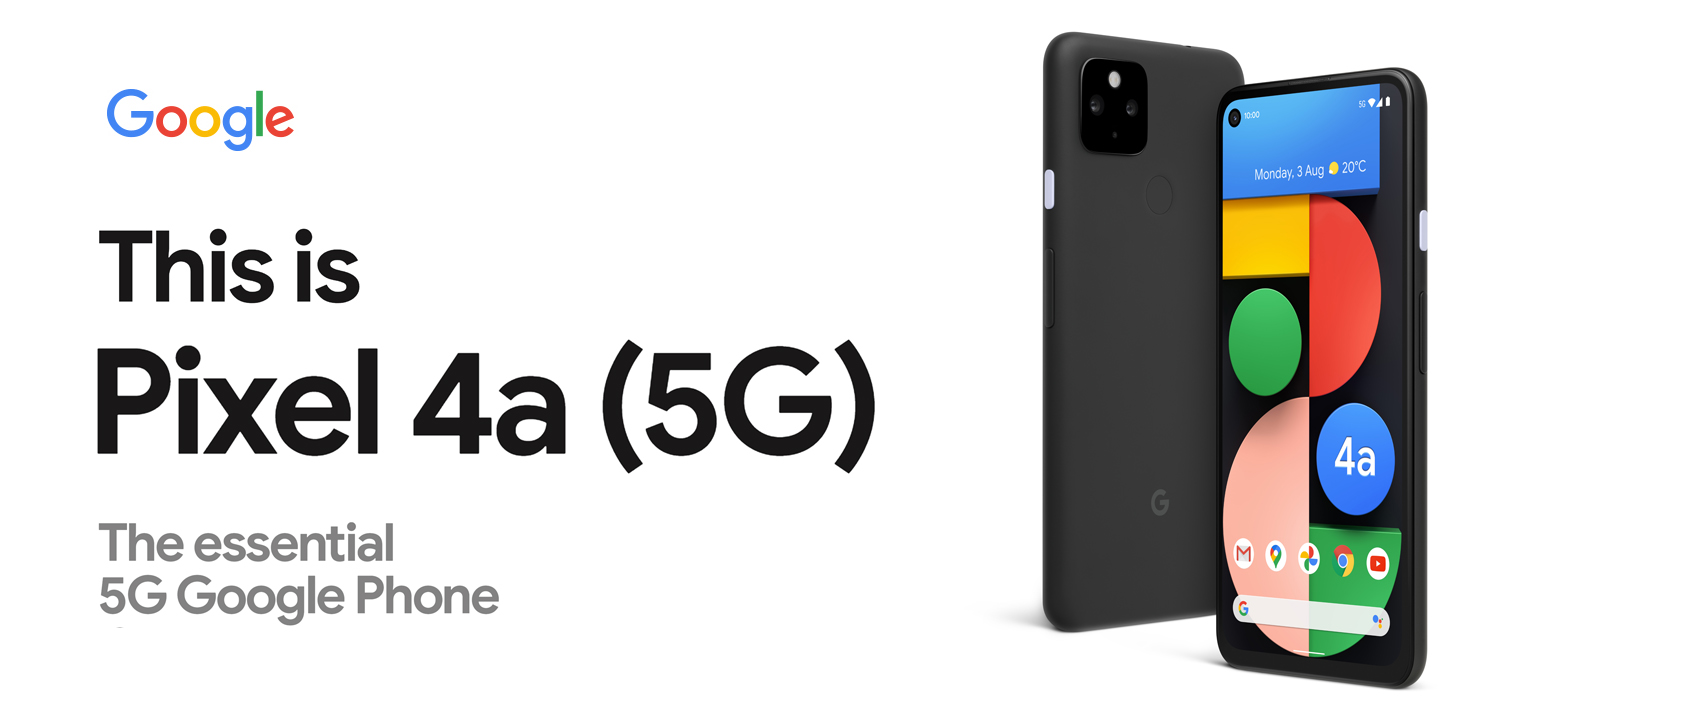 This is Pixel 4a